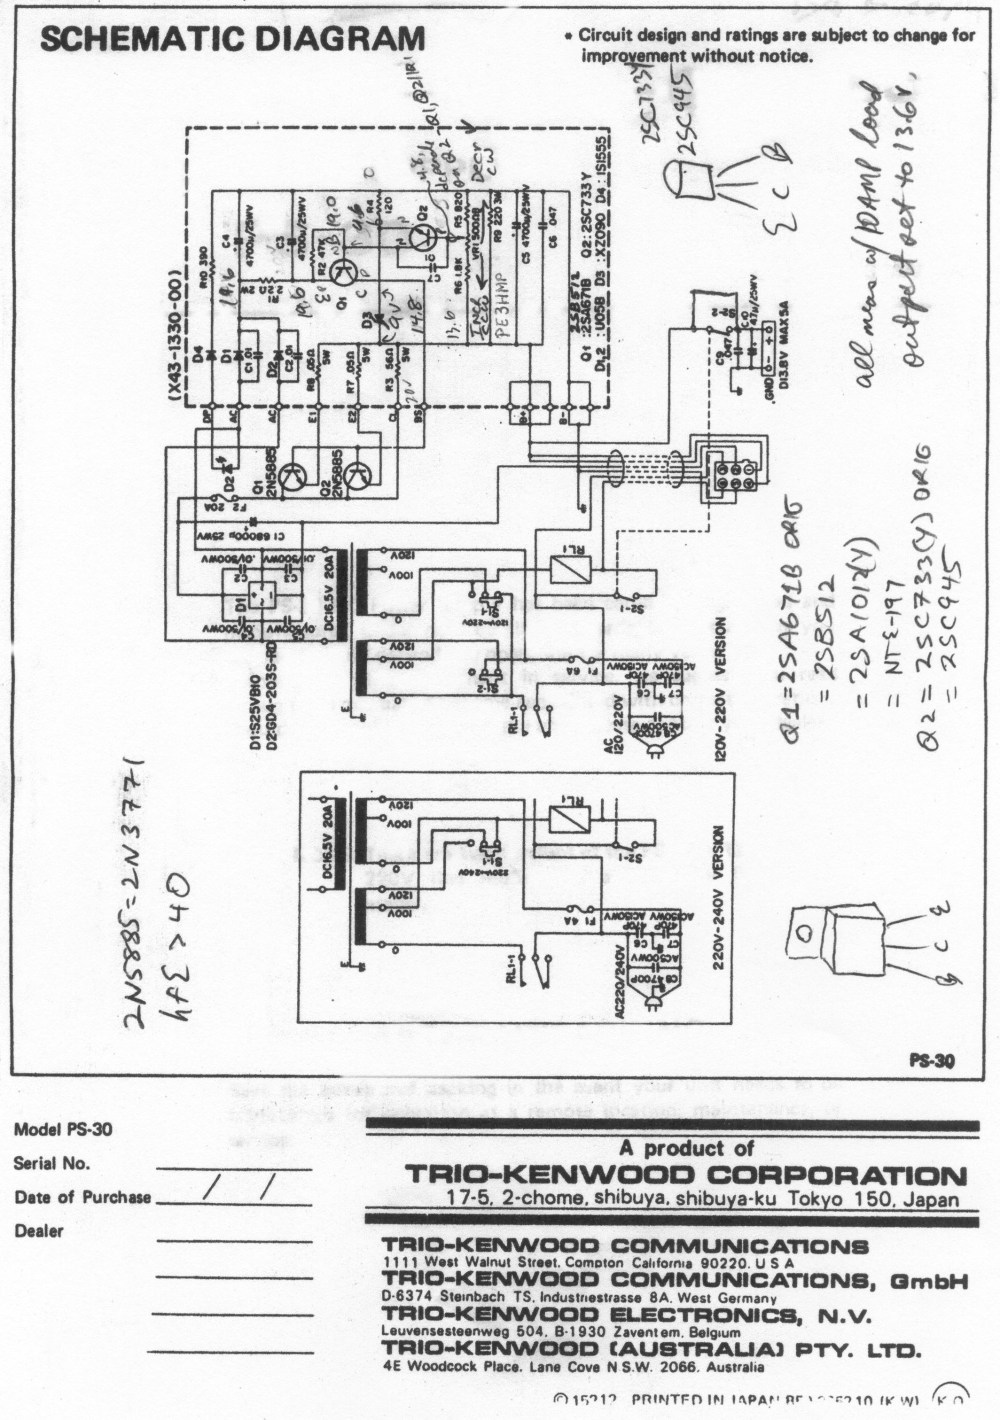 medium resolution of ps 30 schematic with repair notes